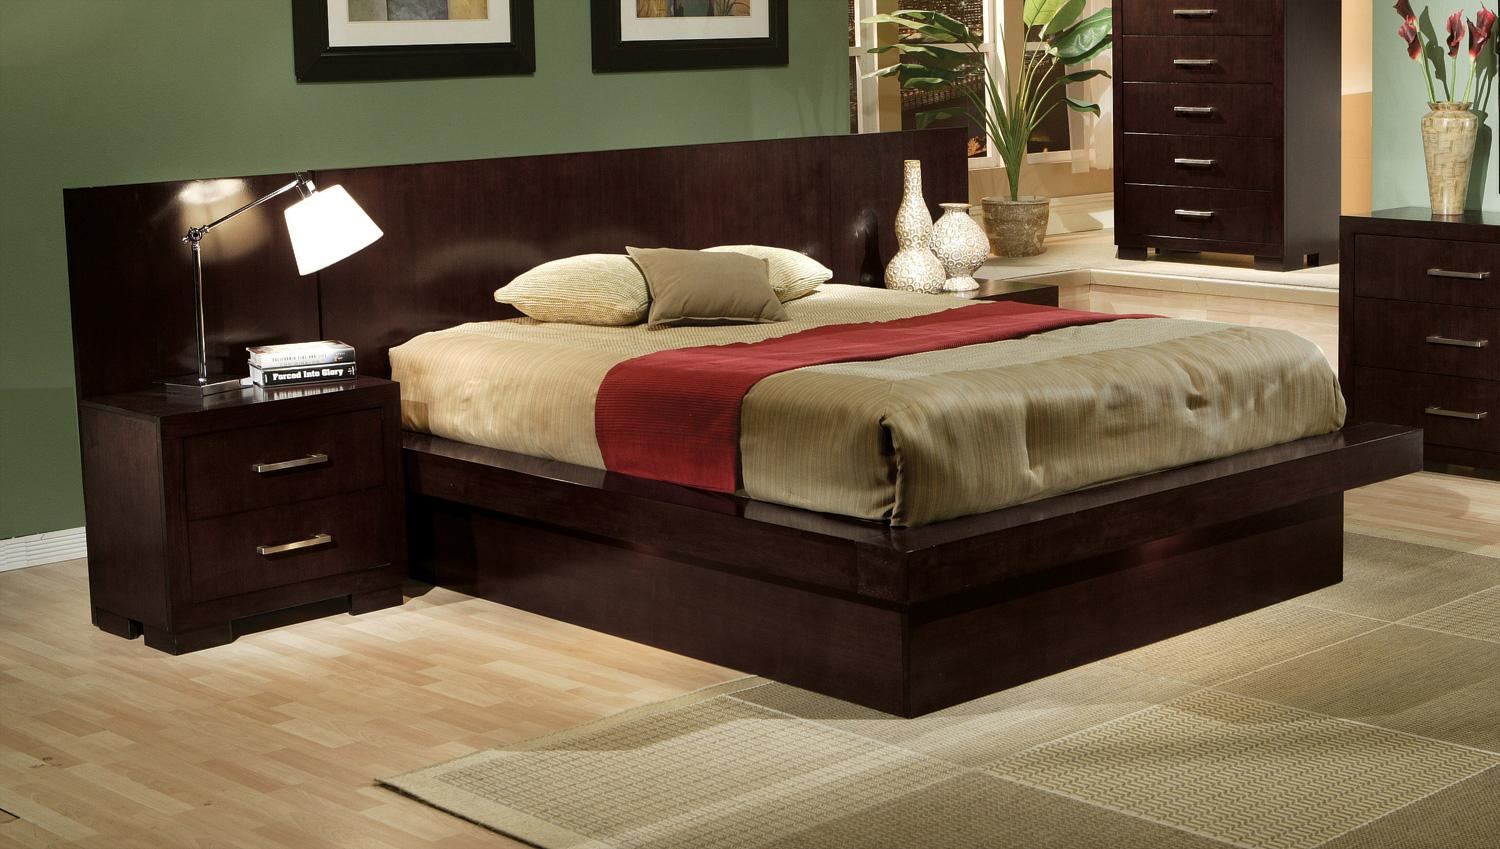 Modern 4 pc platform bed queen bedroom fairfax va for Bedroom furniture sets queen